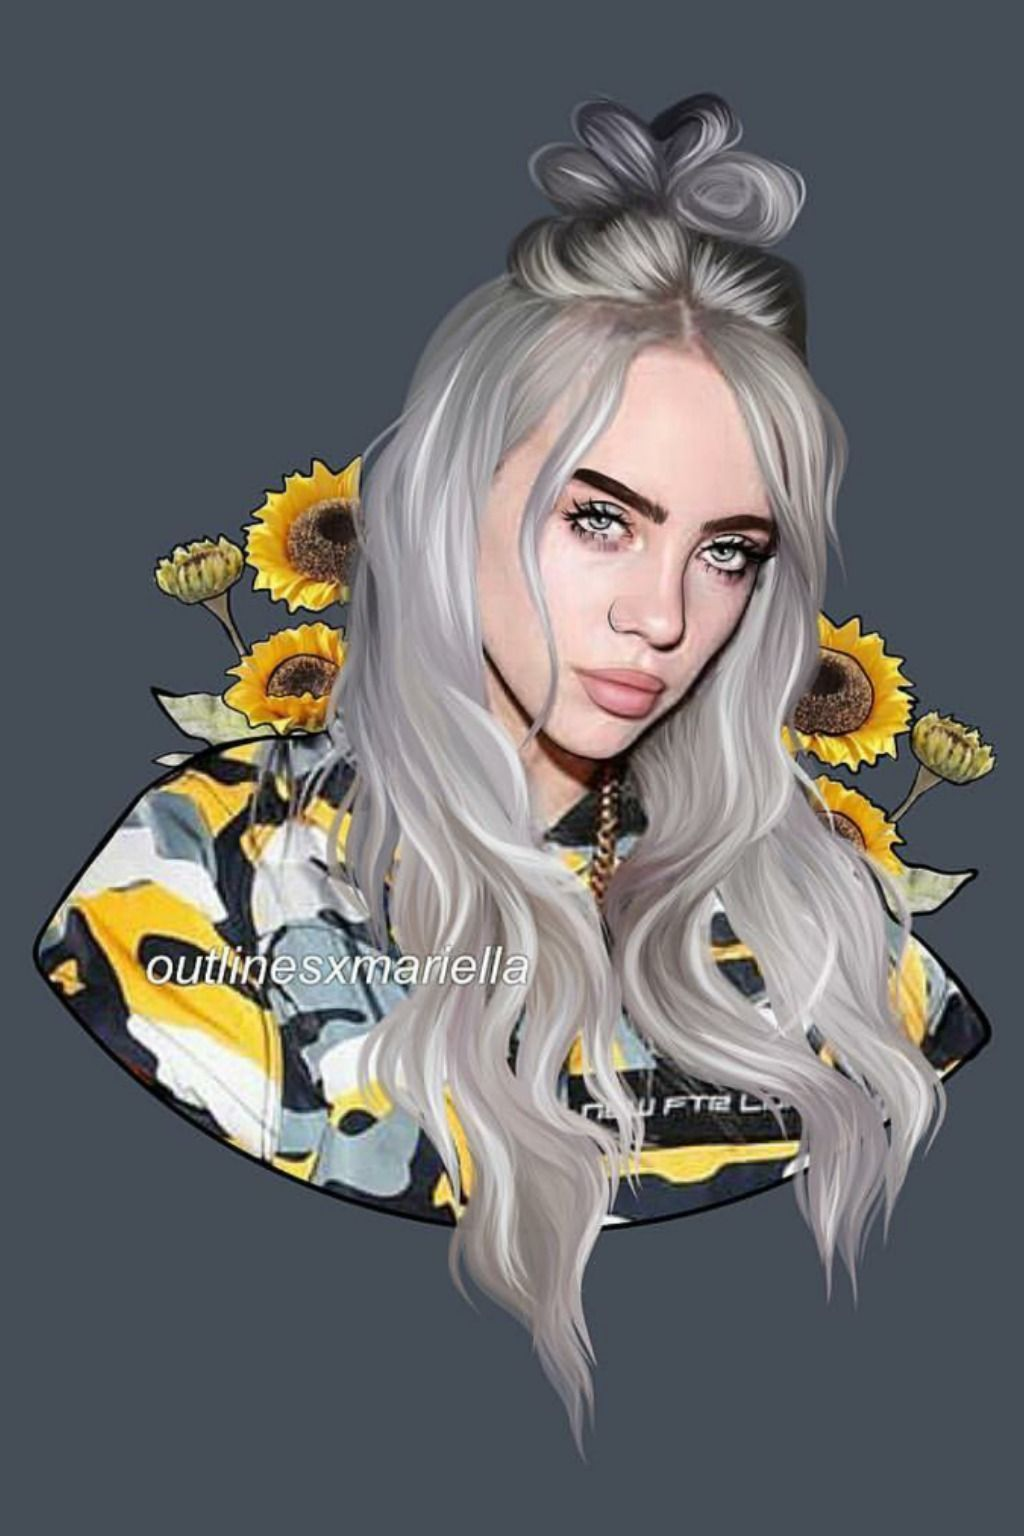 10 Ways To Use Stickers To Flood Your Socials With Billie Eilish Fan Art - #¡10 #Art #Billie #Eilish #Fan #Flood #Socials #Stickers #to #Use #Ways #With #Your